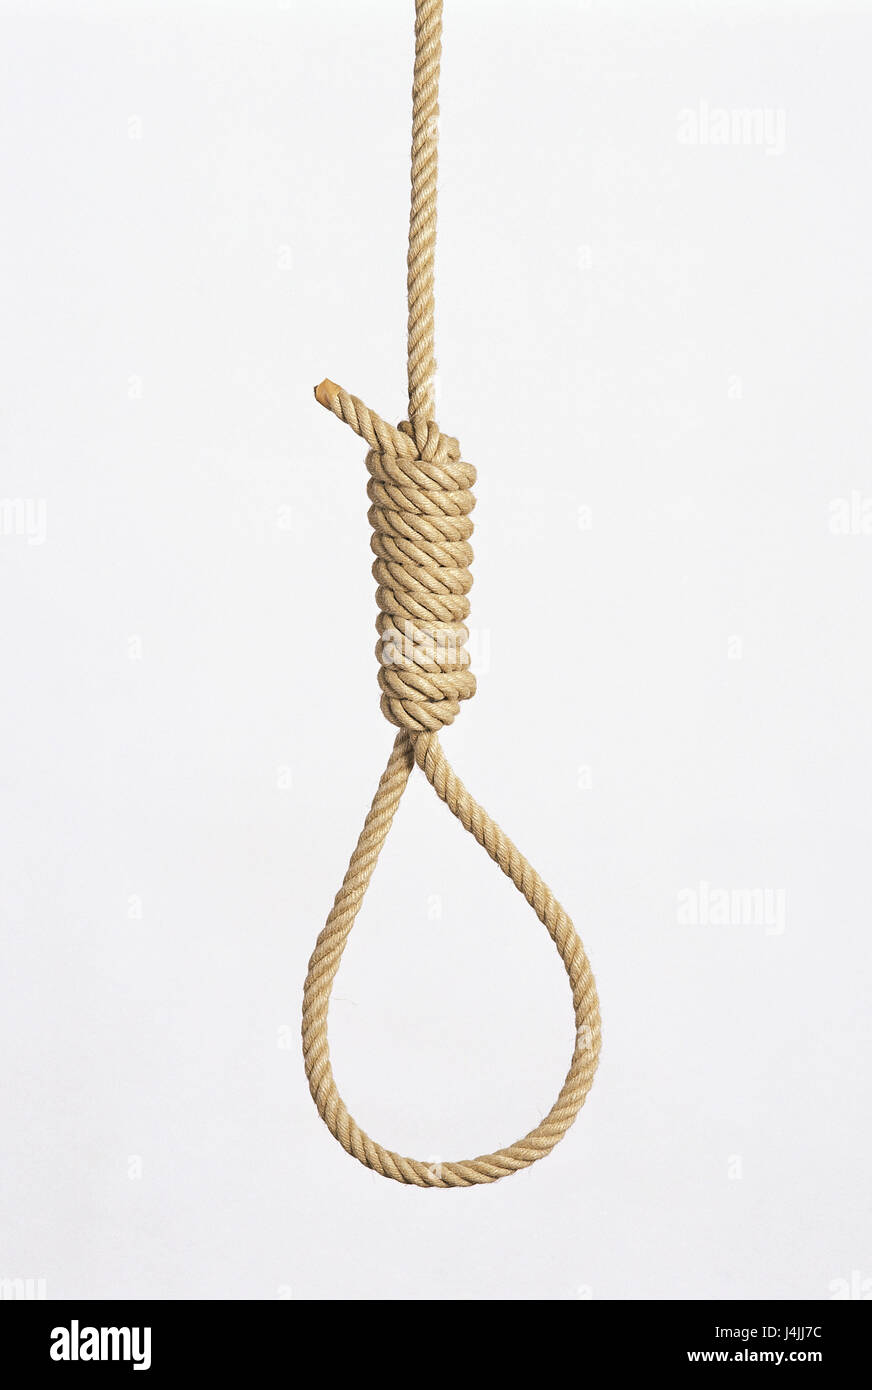 Rope, hangman's loop icon, hopelessness, hopelessness, resignation, Weary of life, suicide, suicide, suicide - Stock Image